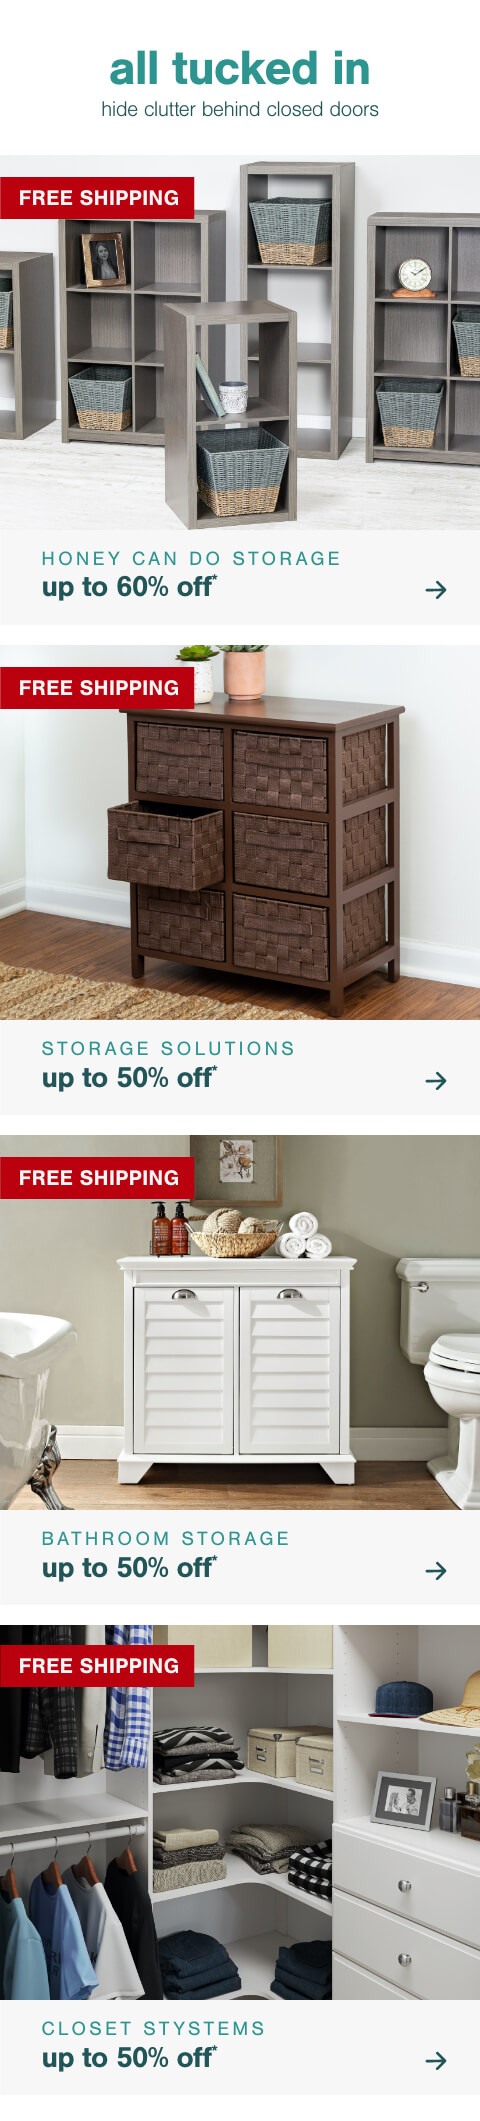 Storage Solutions featuring Honey Can Do up to 60% off + Free Shipping, New Arrivals for the New Year- Up to 50% off Storage Solutions + Free Shipping    , G New Year, New Closet- Up to 50% Off Closet Systems + Free Shipping